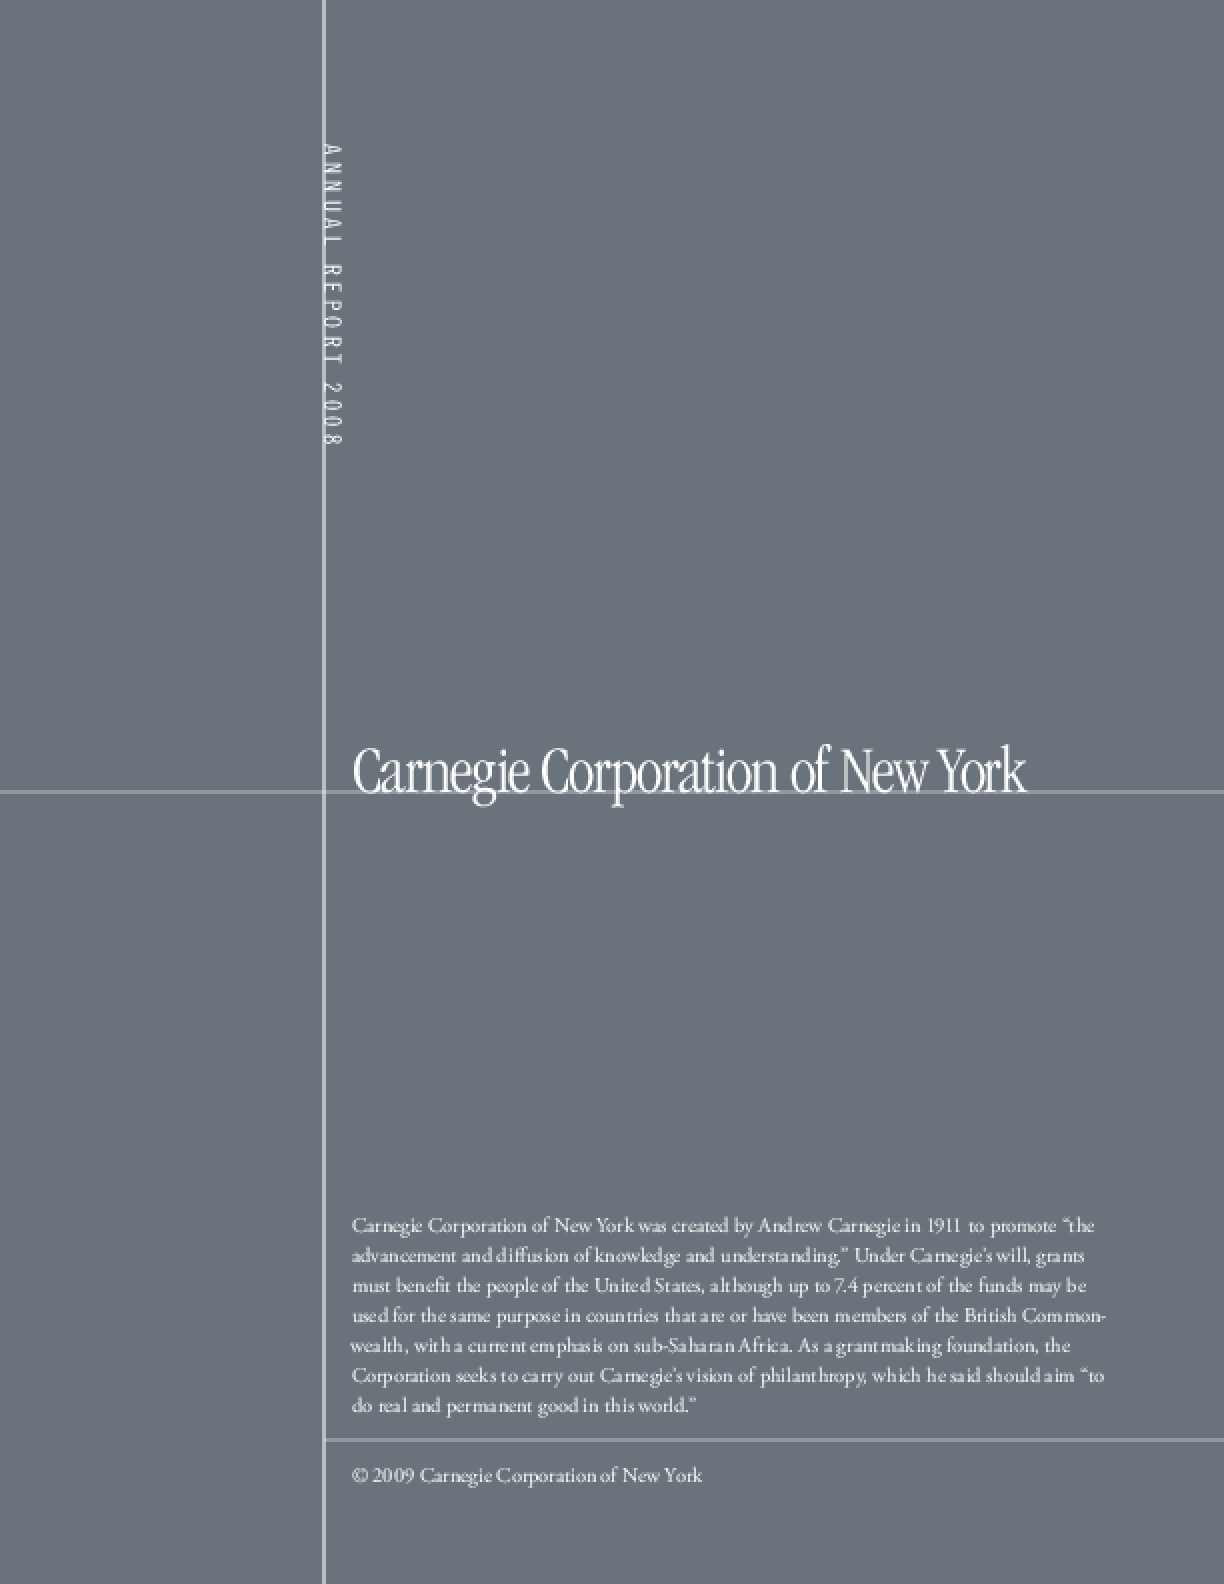 Carnegie Corporation of New York - 2008 Annual Report